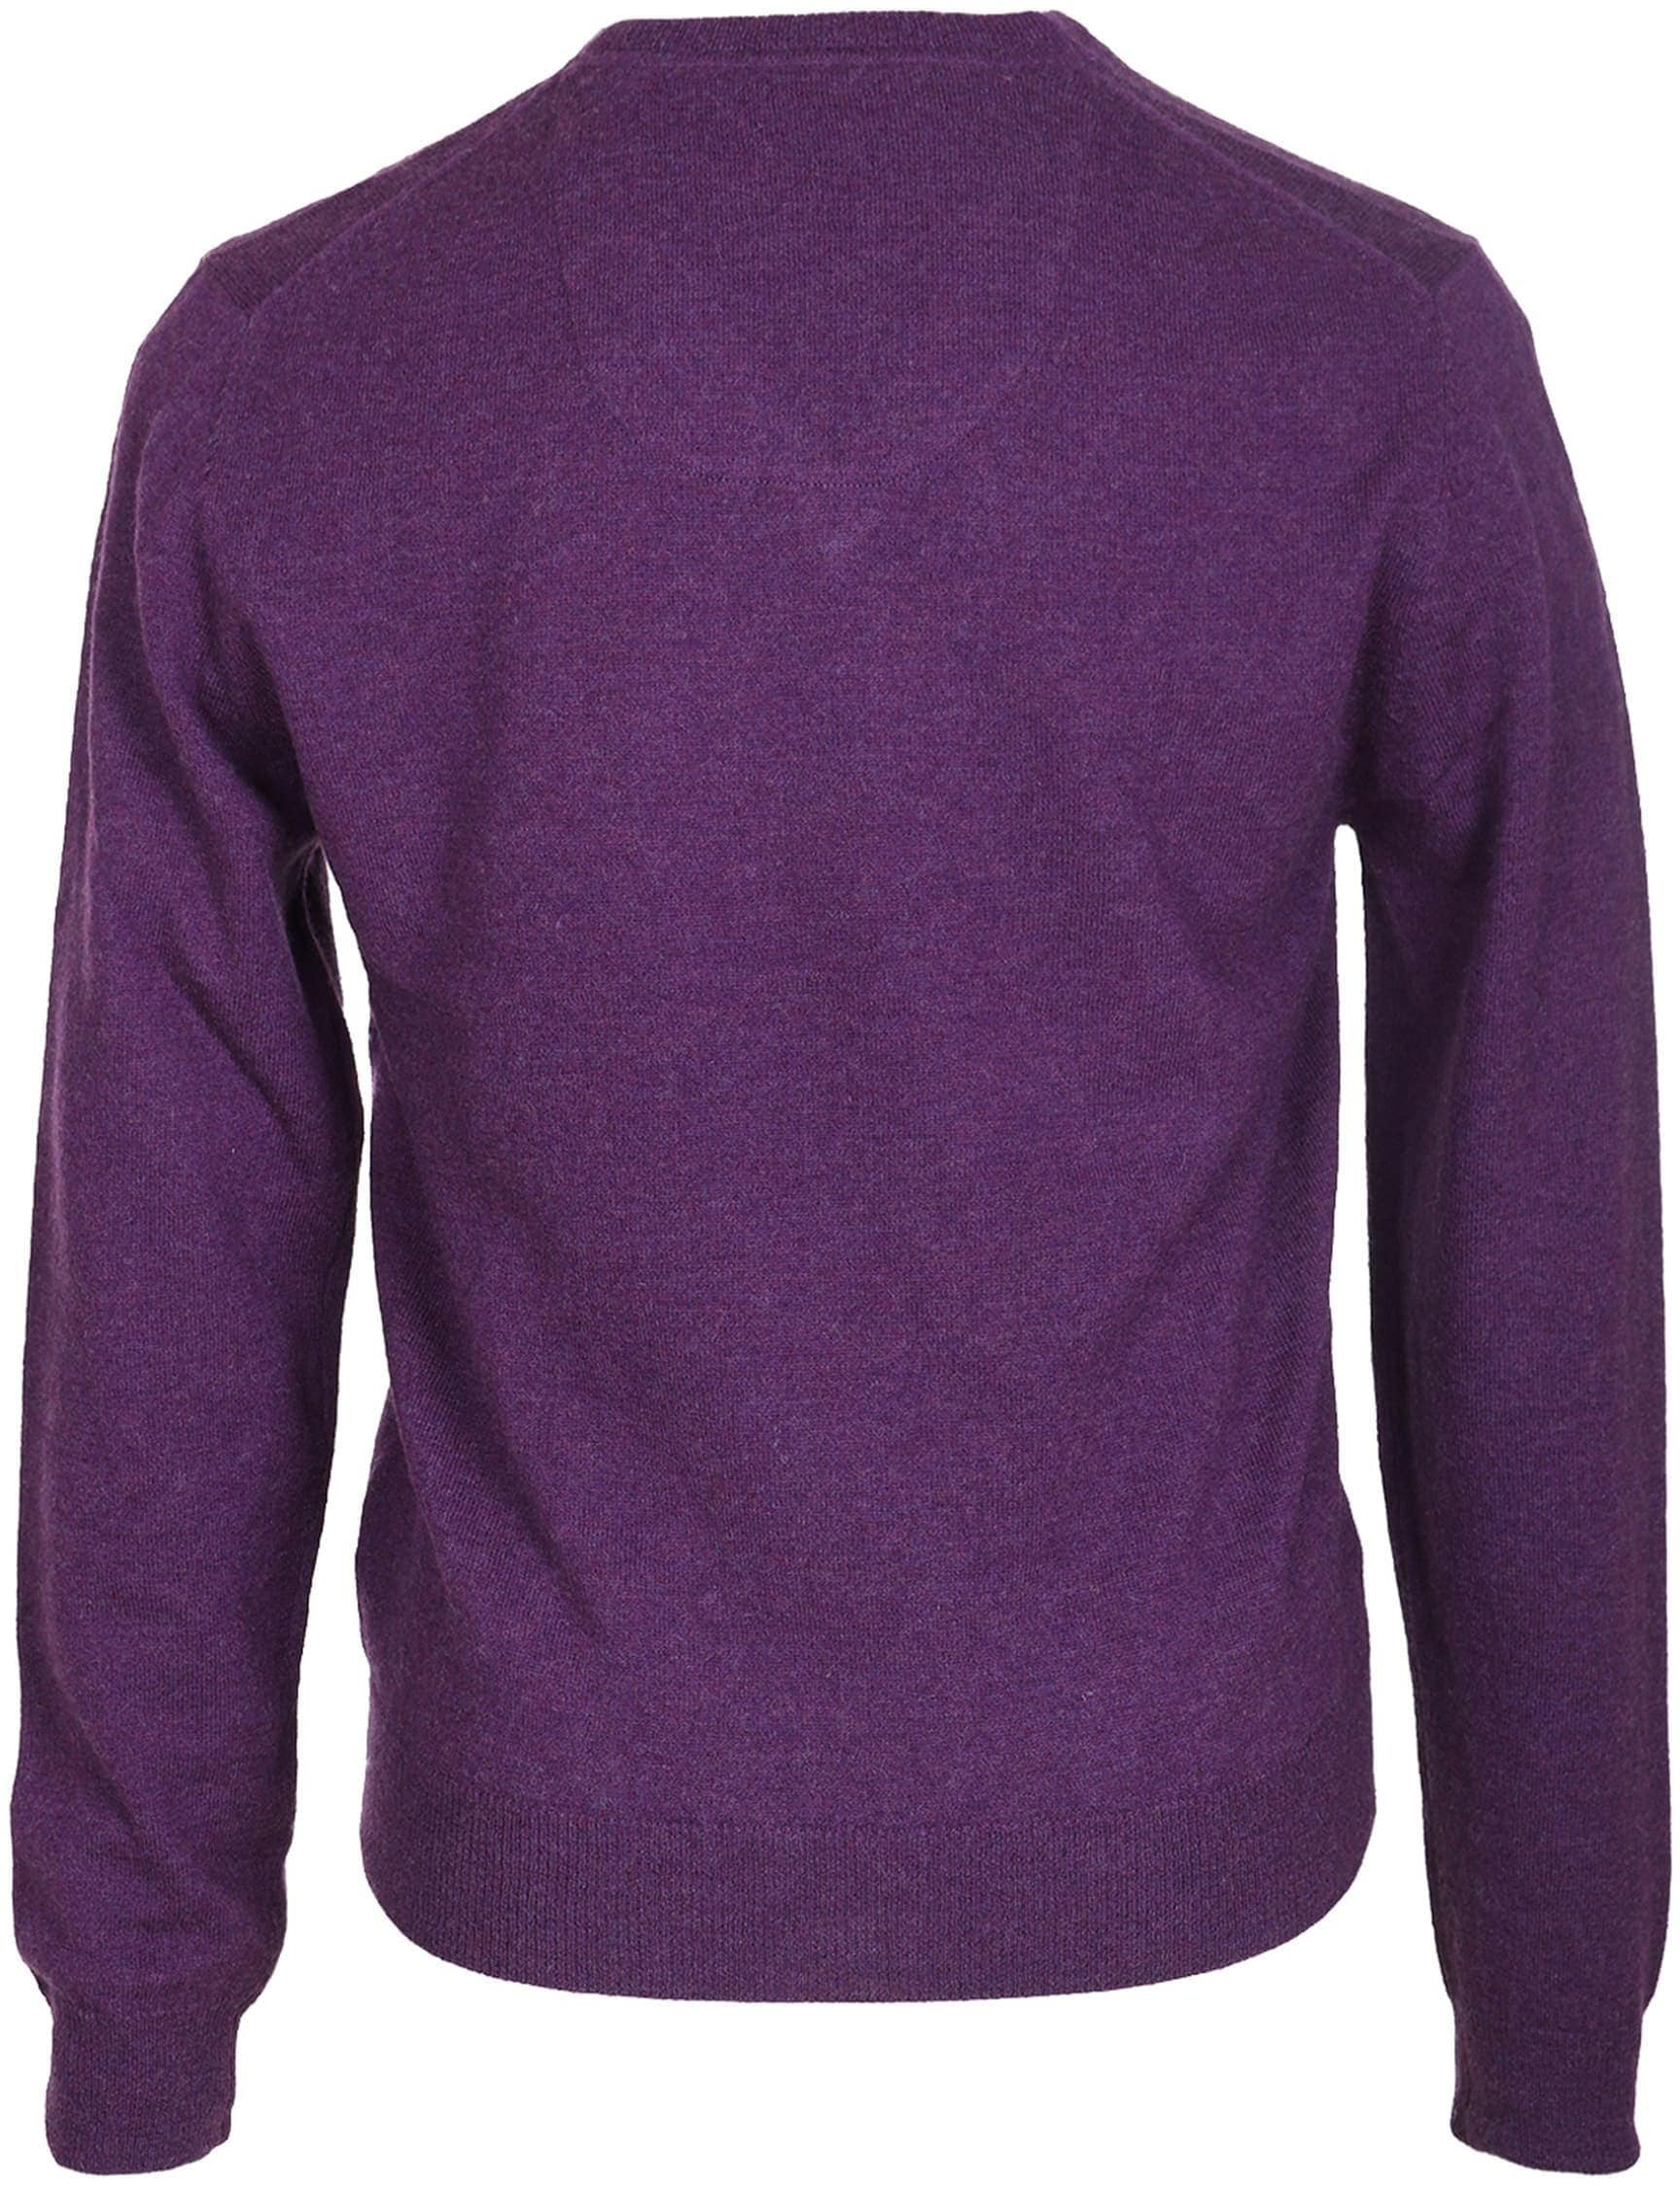 Suitable Pullover Lamswol Paars foto 1